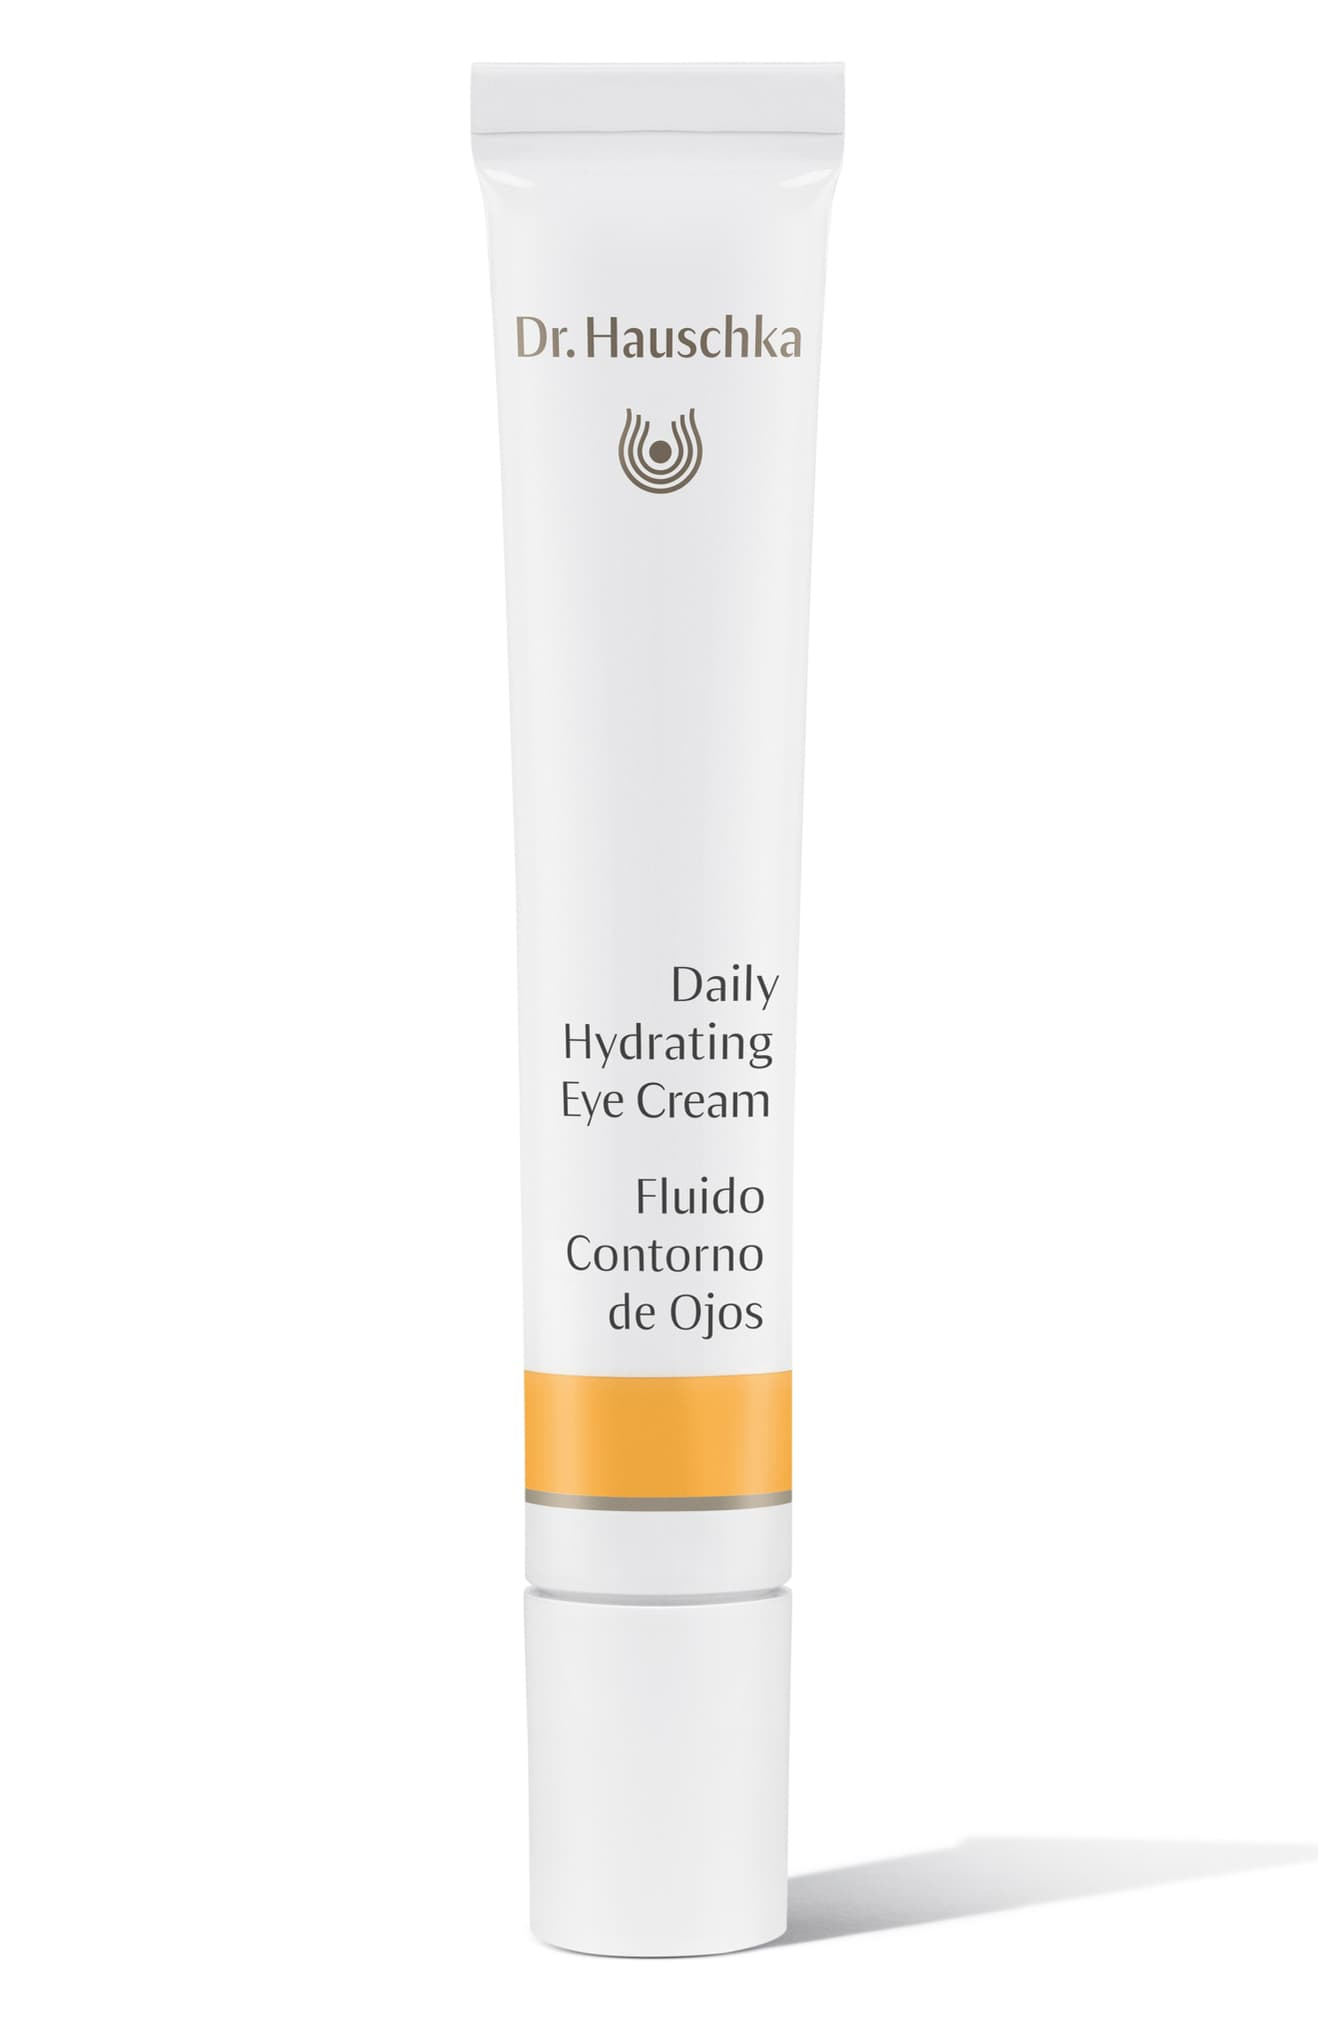 Dr. Hauschka-Daily Hydrating Eye Cream